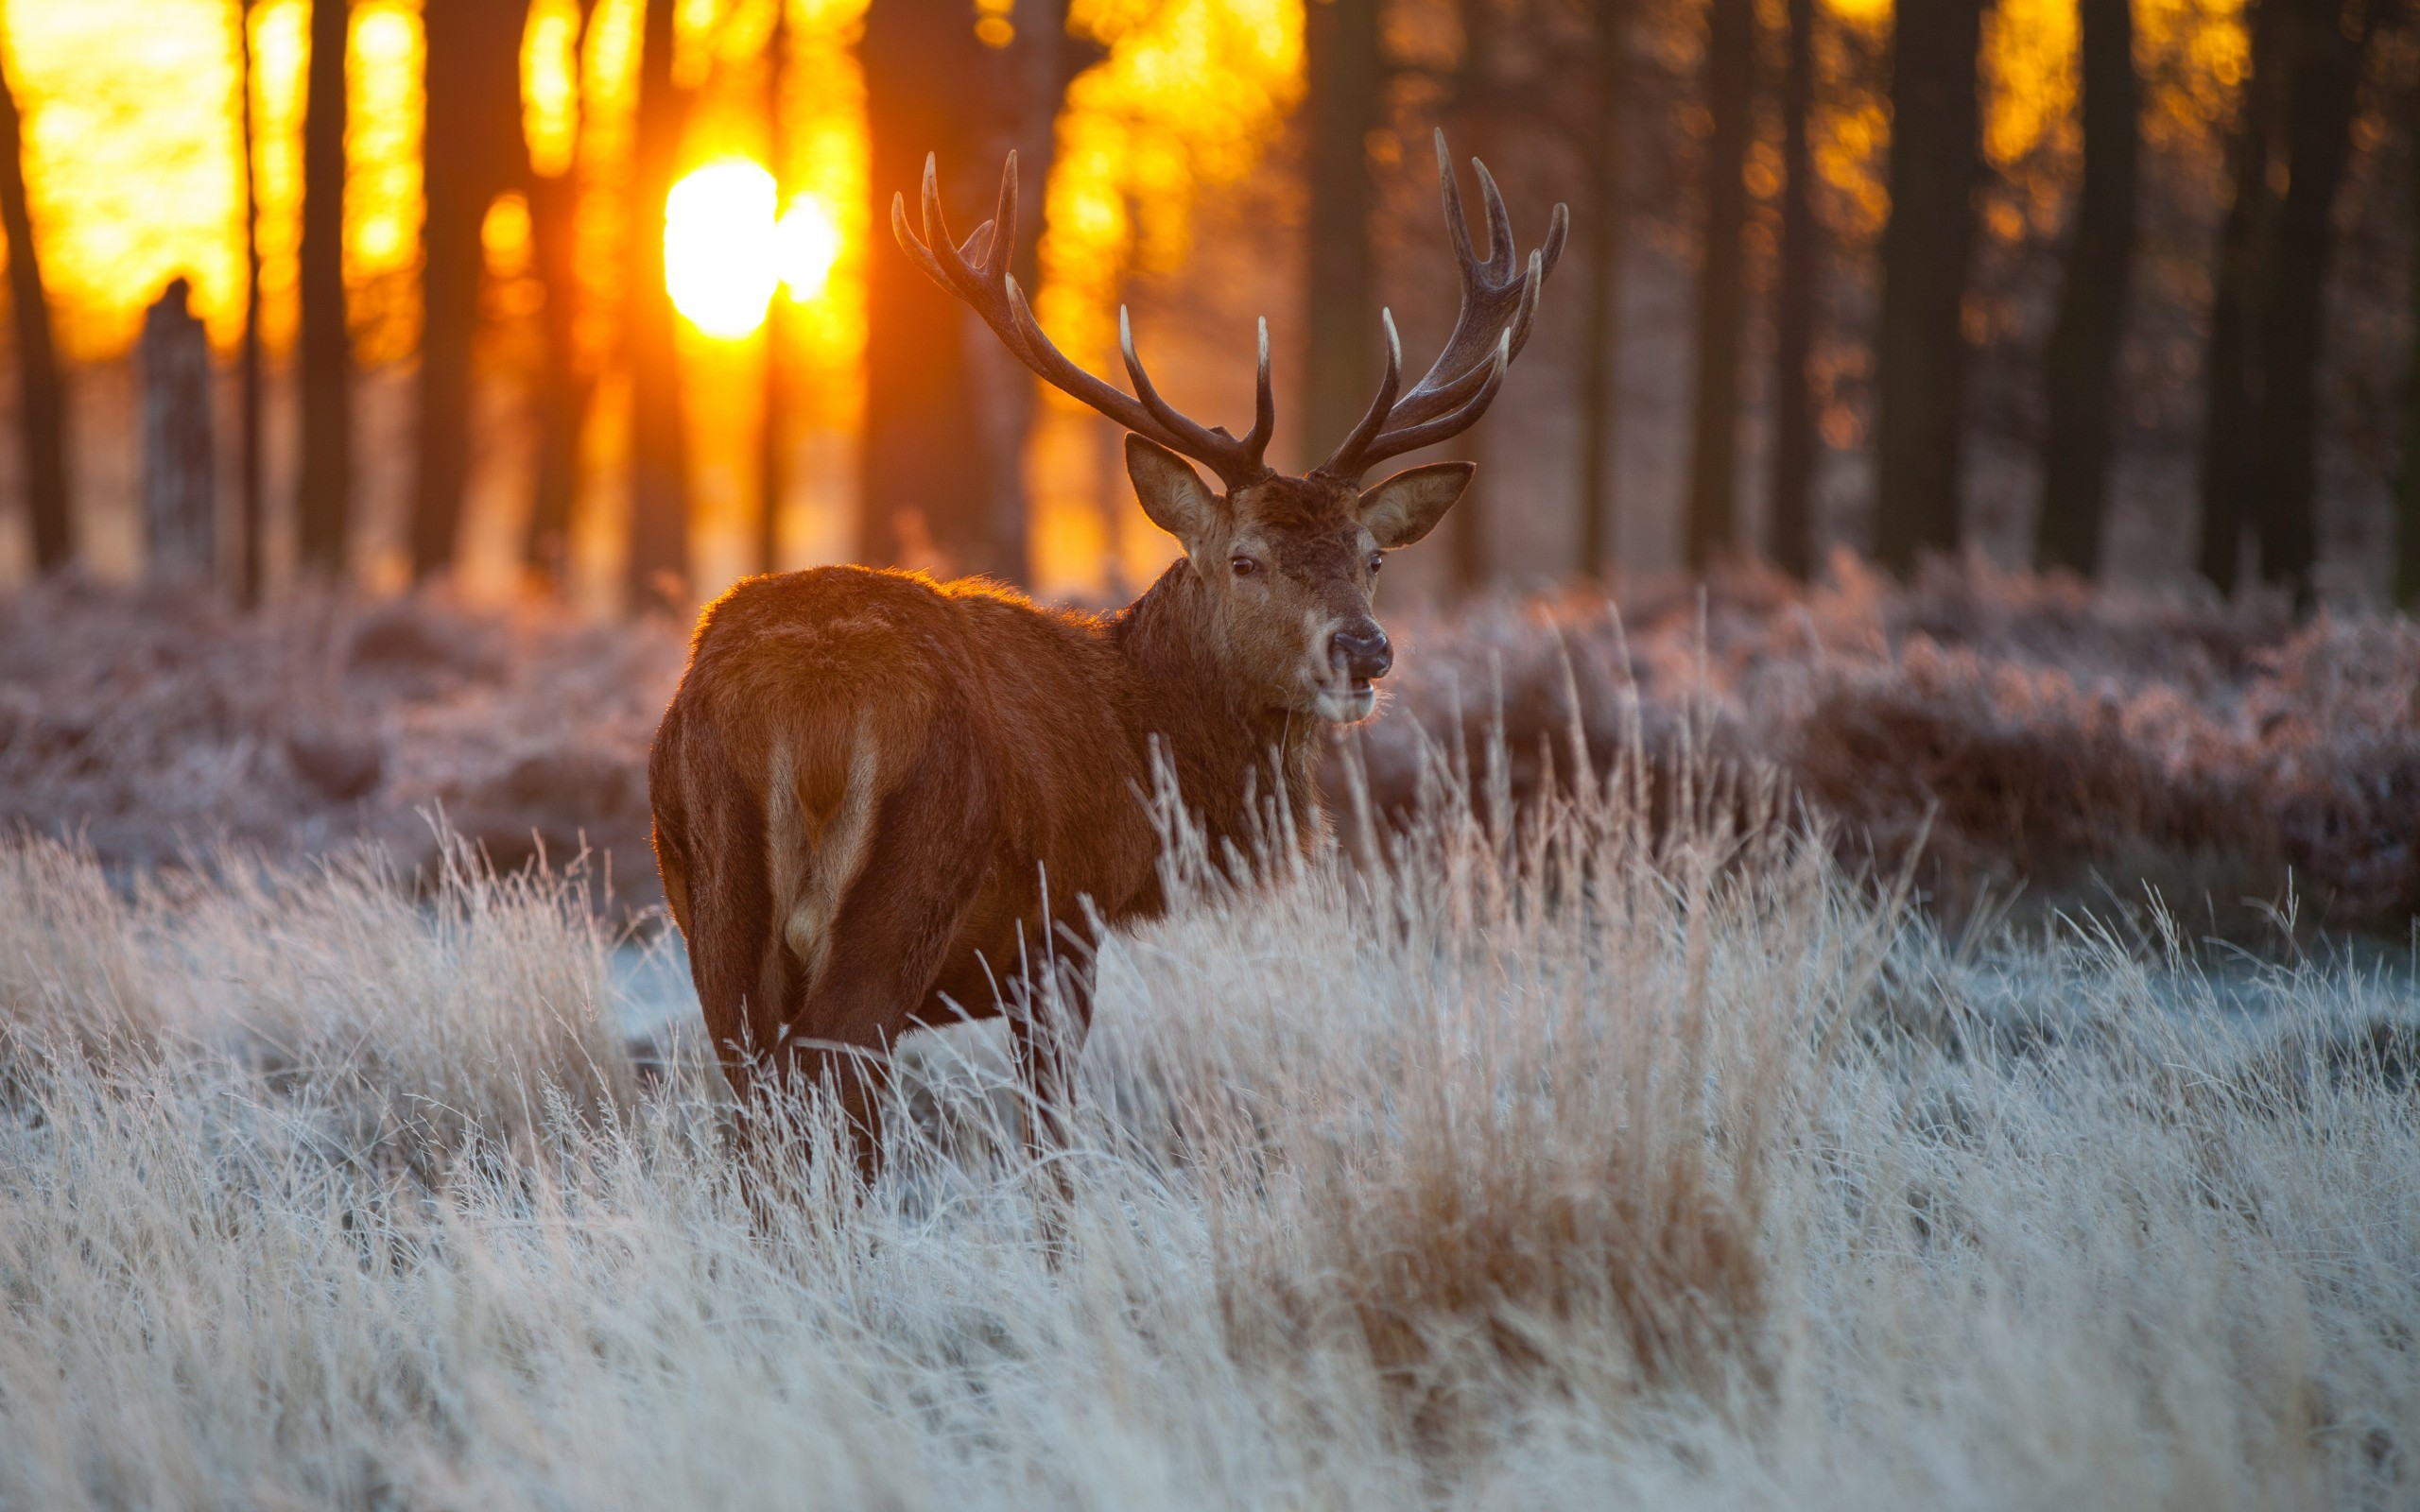 Free Download Red Deer Wildlife Hd Wallpaper New Hd Wallpapers 2560x1600 For Your Desktop Mobile Tablet Explore 47 Hd Deer Wallpaper Deer Wallpaper Deer Wallpapers For Desktop Wallpaper Deer Pictures